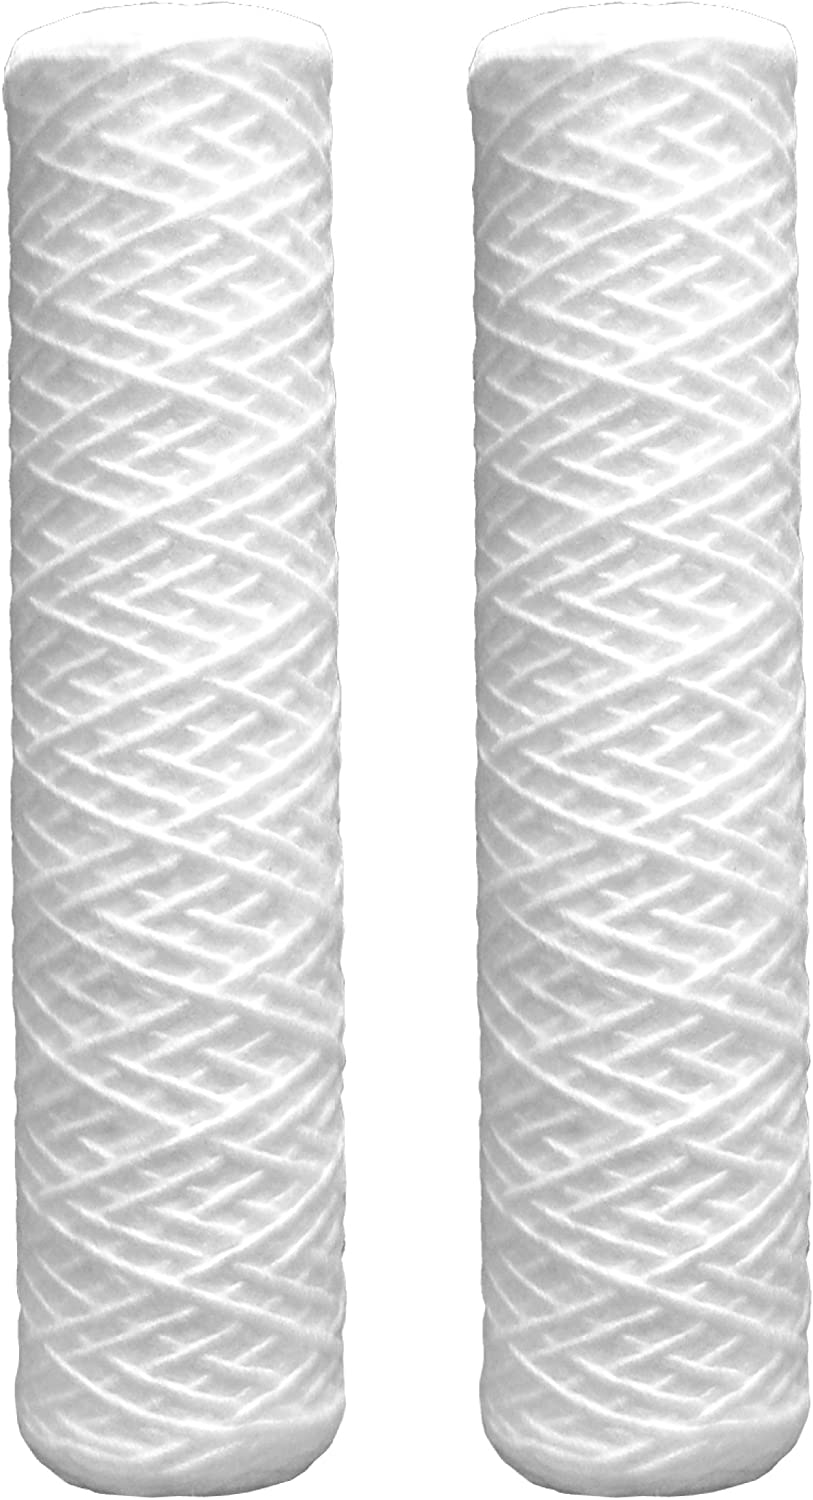 DuPont WFPFC4002 10 x 2.5 String Wound Sediment Filter